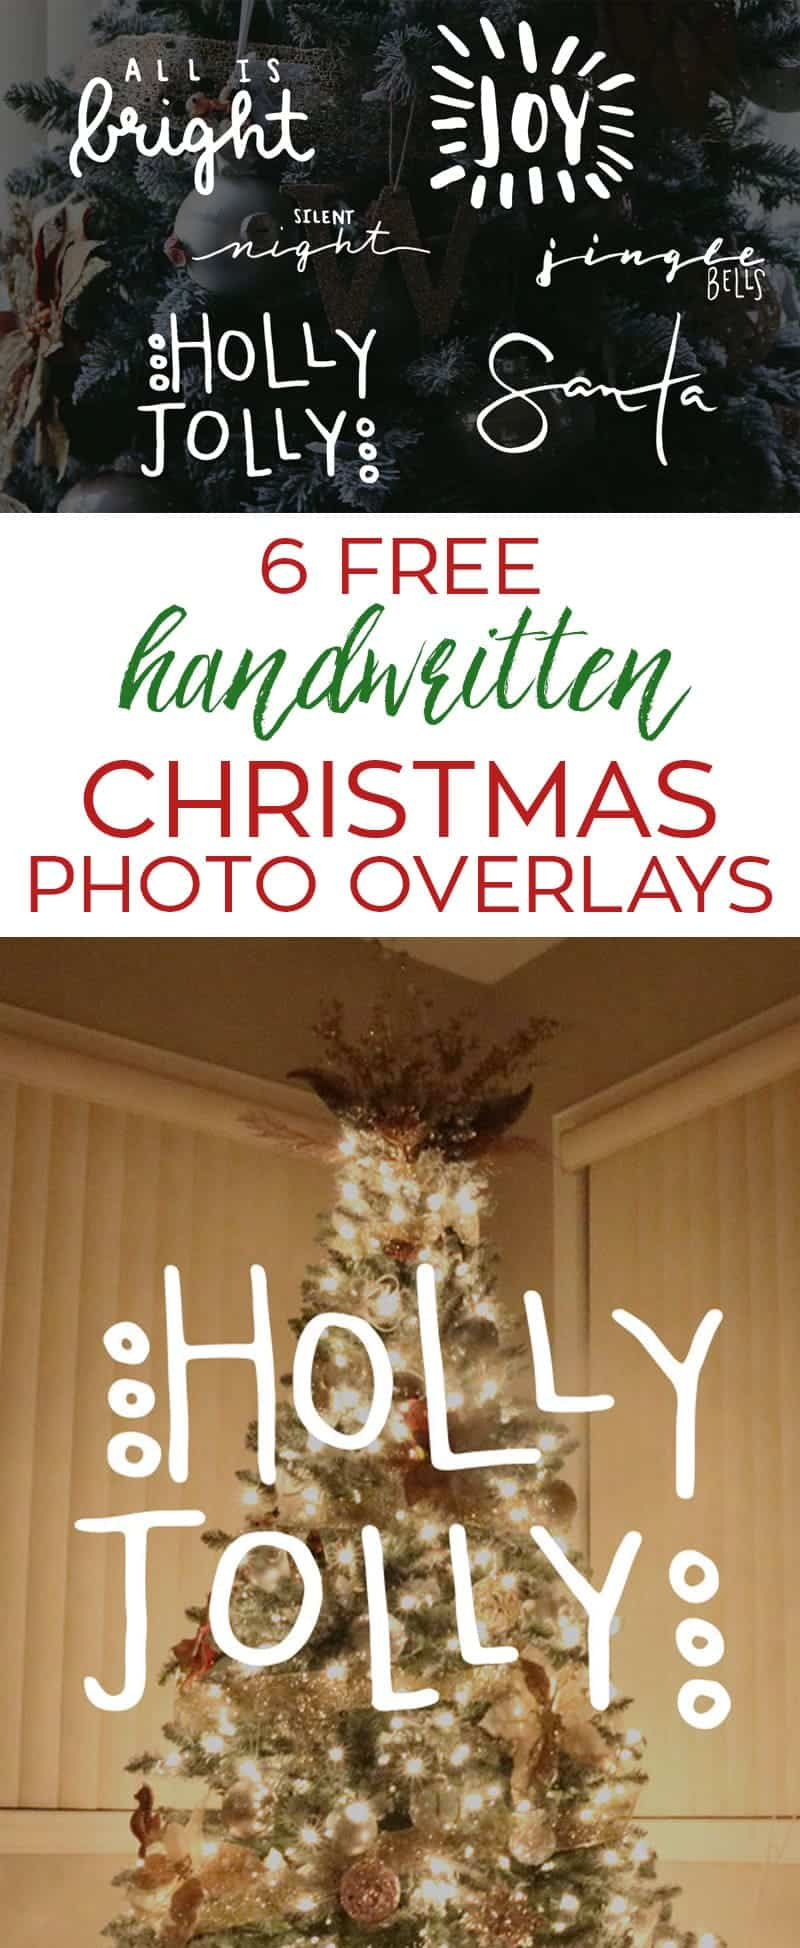 Handwritten Free Christmas Photo Overlays | LovePaperCrafts.com